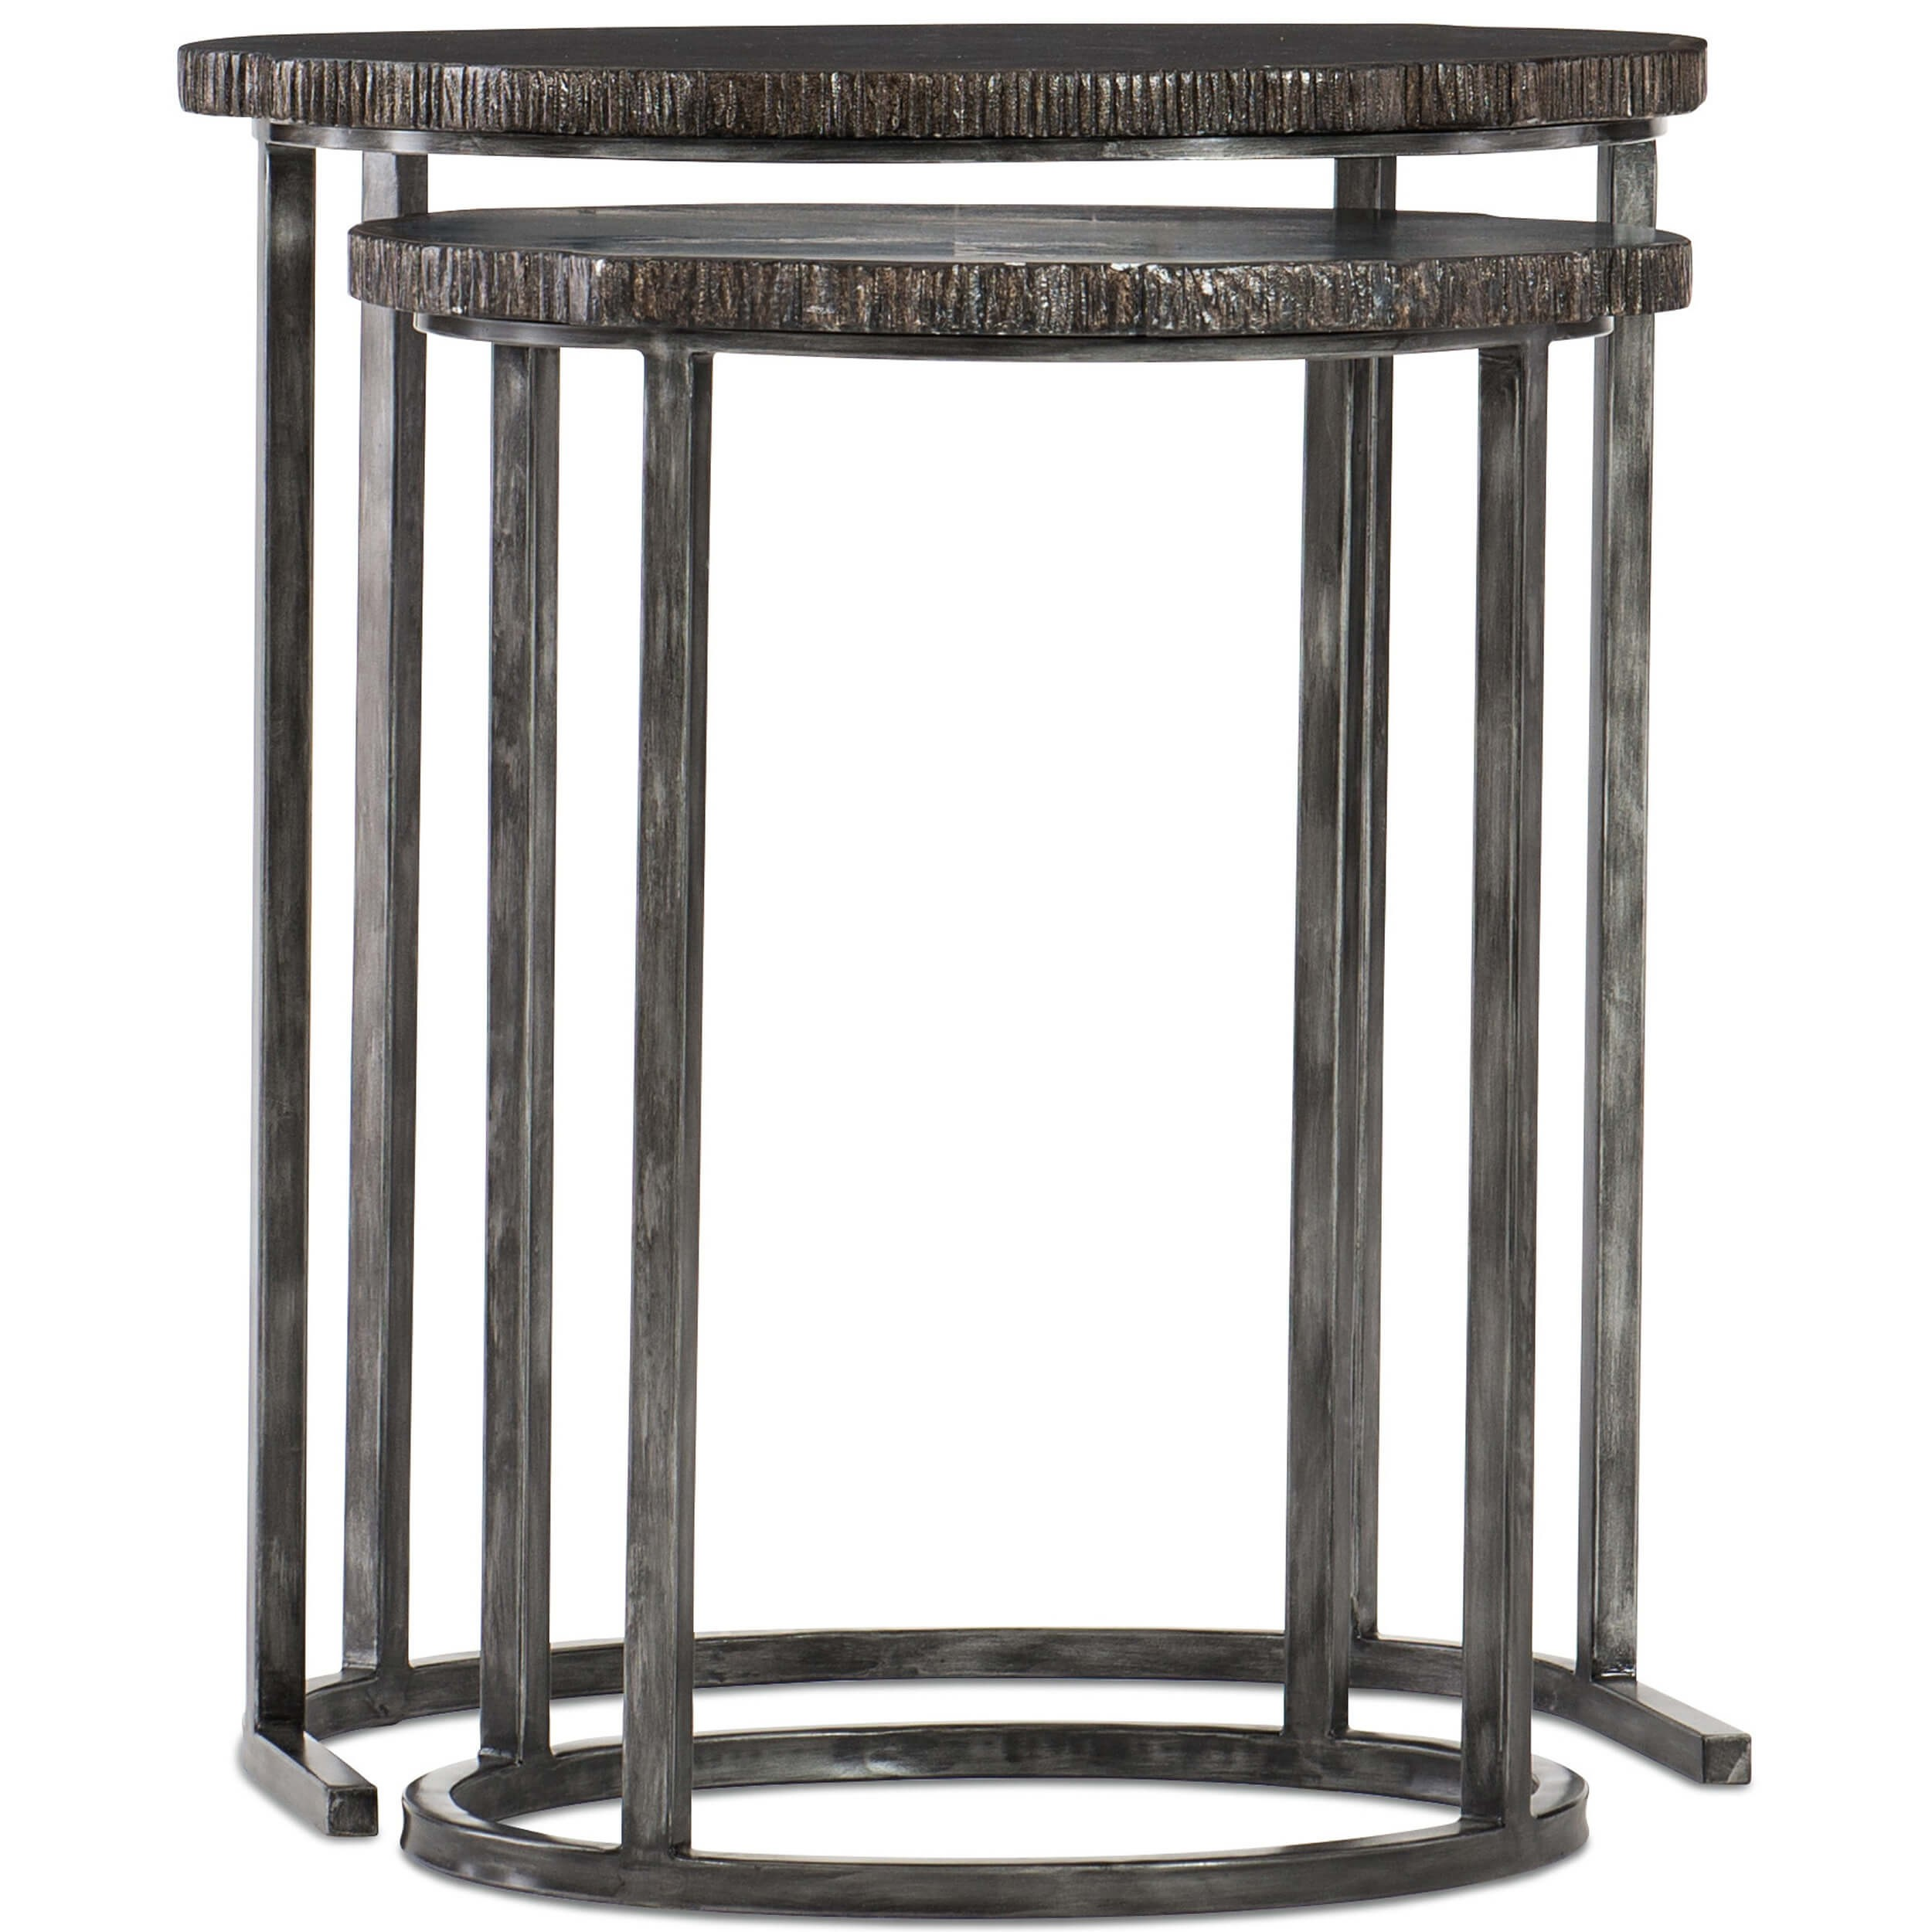 painted petrified wood nesting tables grow your social circle accent table furniture end small large bedside inch round plastic tablecloths mirrored homesense dining chairs diy